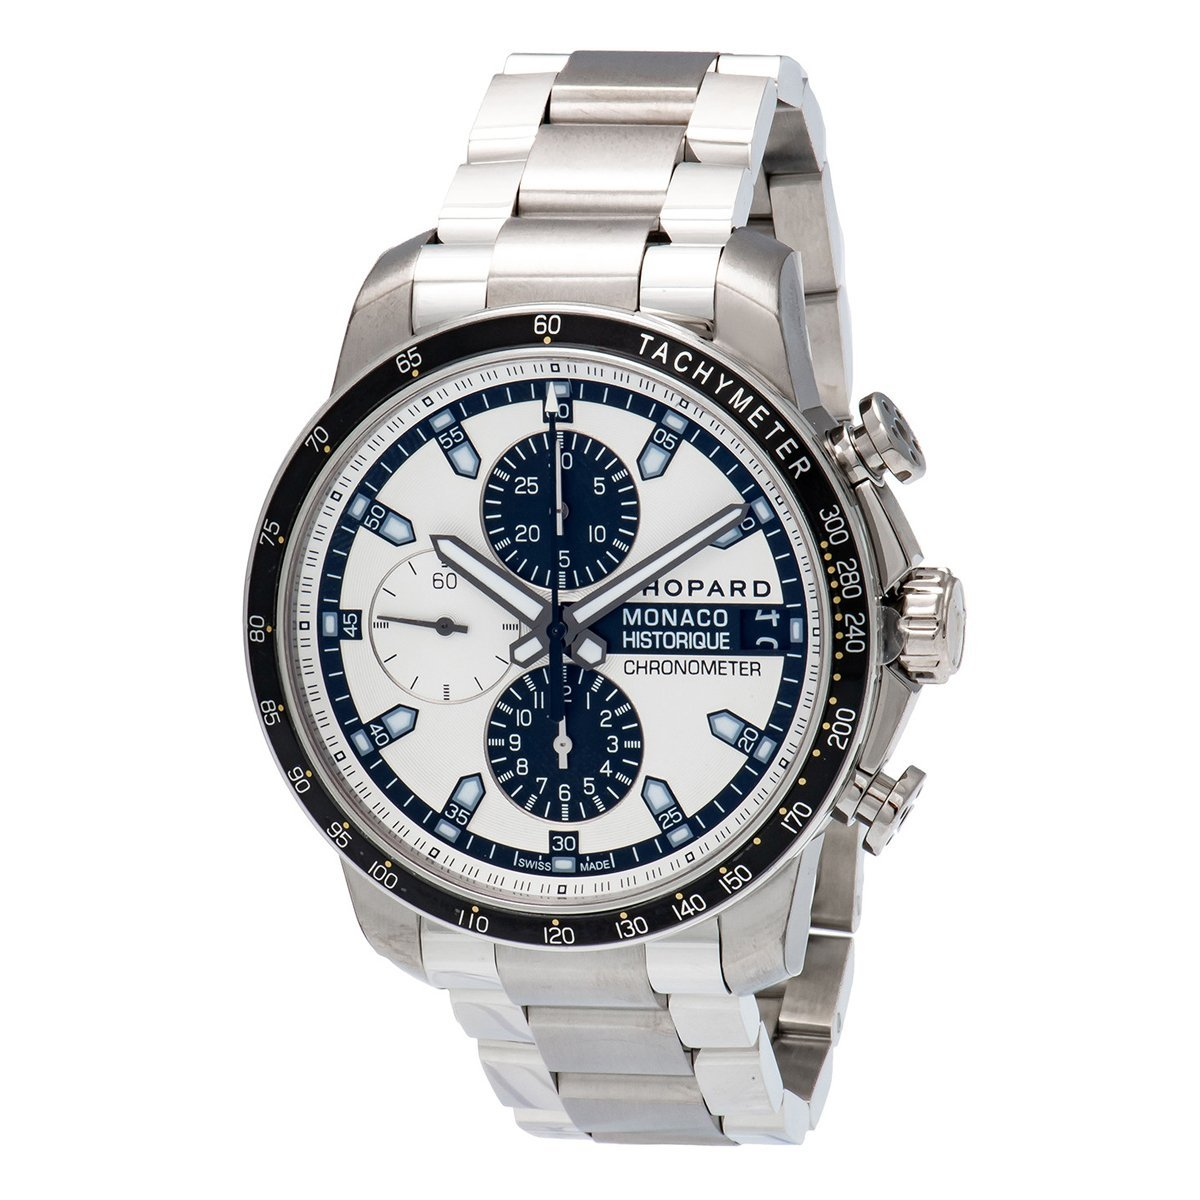 Chopard Grand Prix Monaco Historique Chronograph Men's Watch White - Watches & Crystals